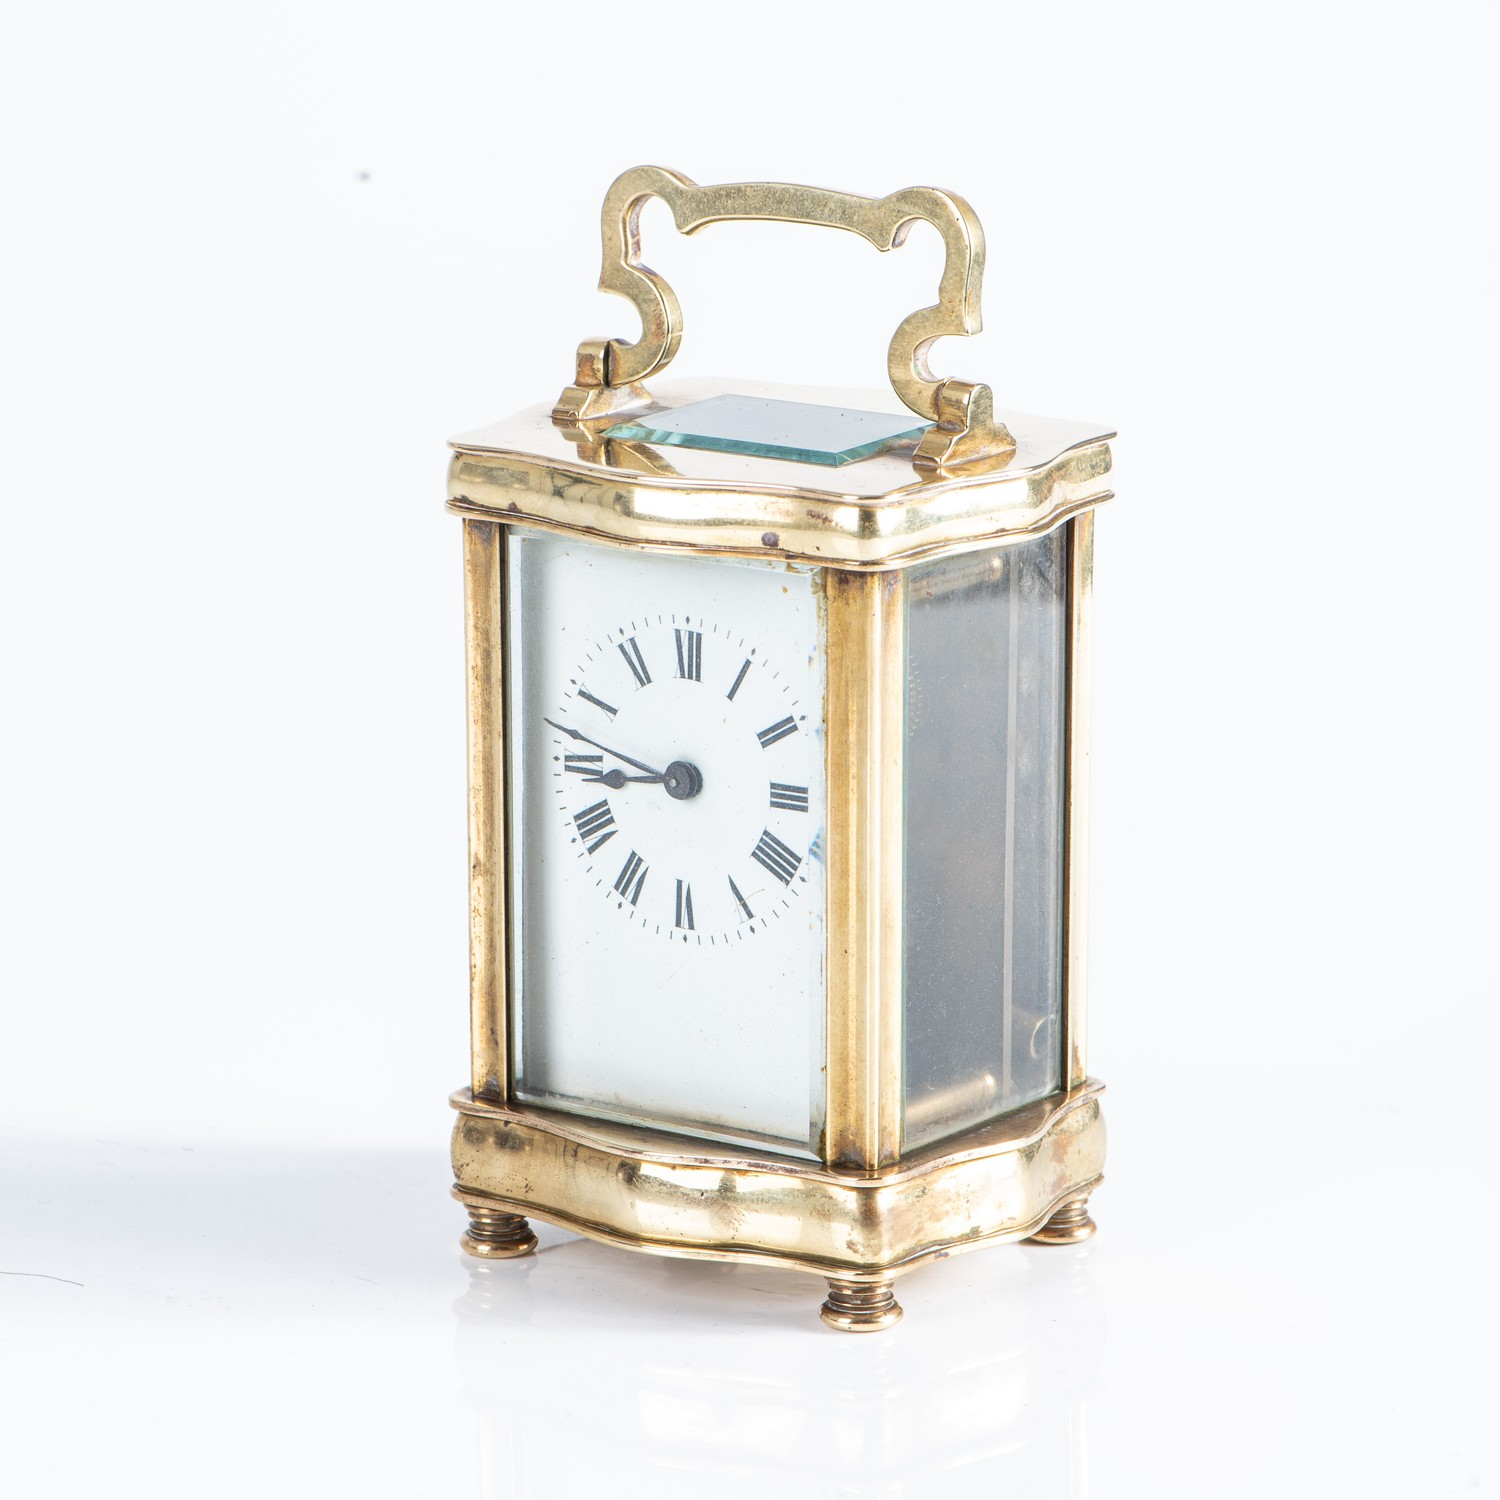 A BRASS CARRIAGE CLOCK - Image 2 of 2